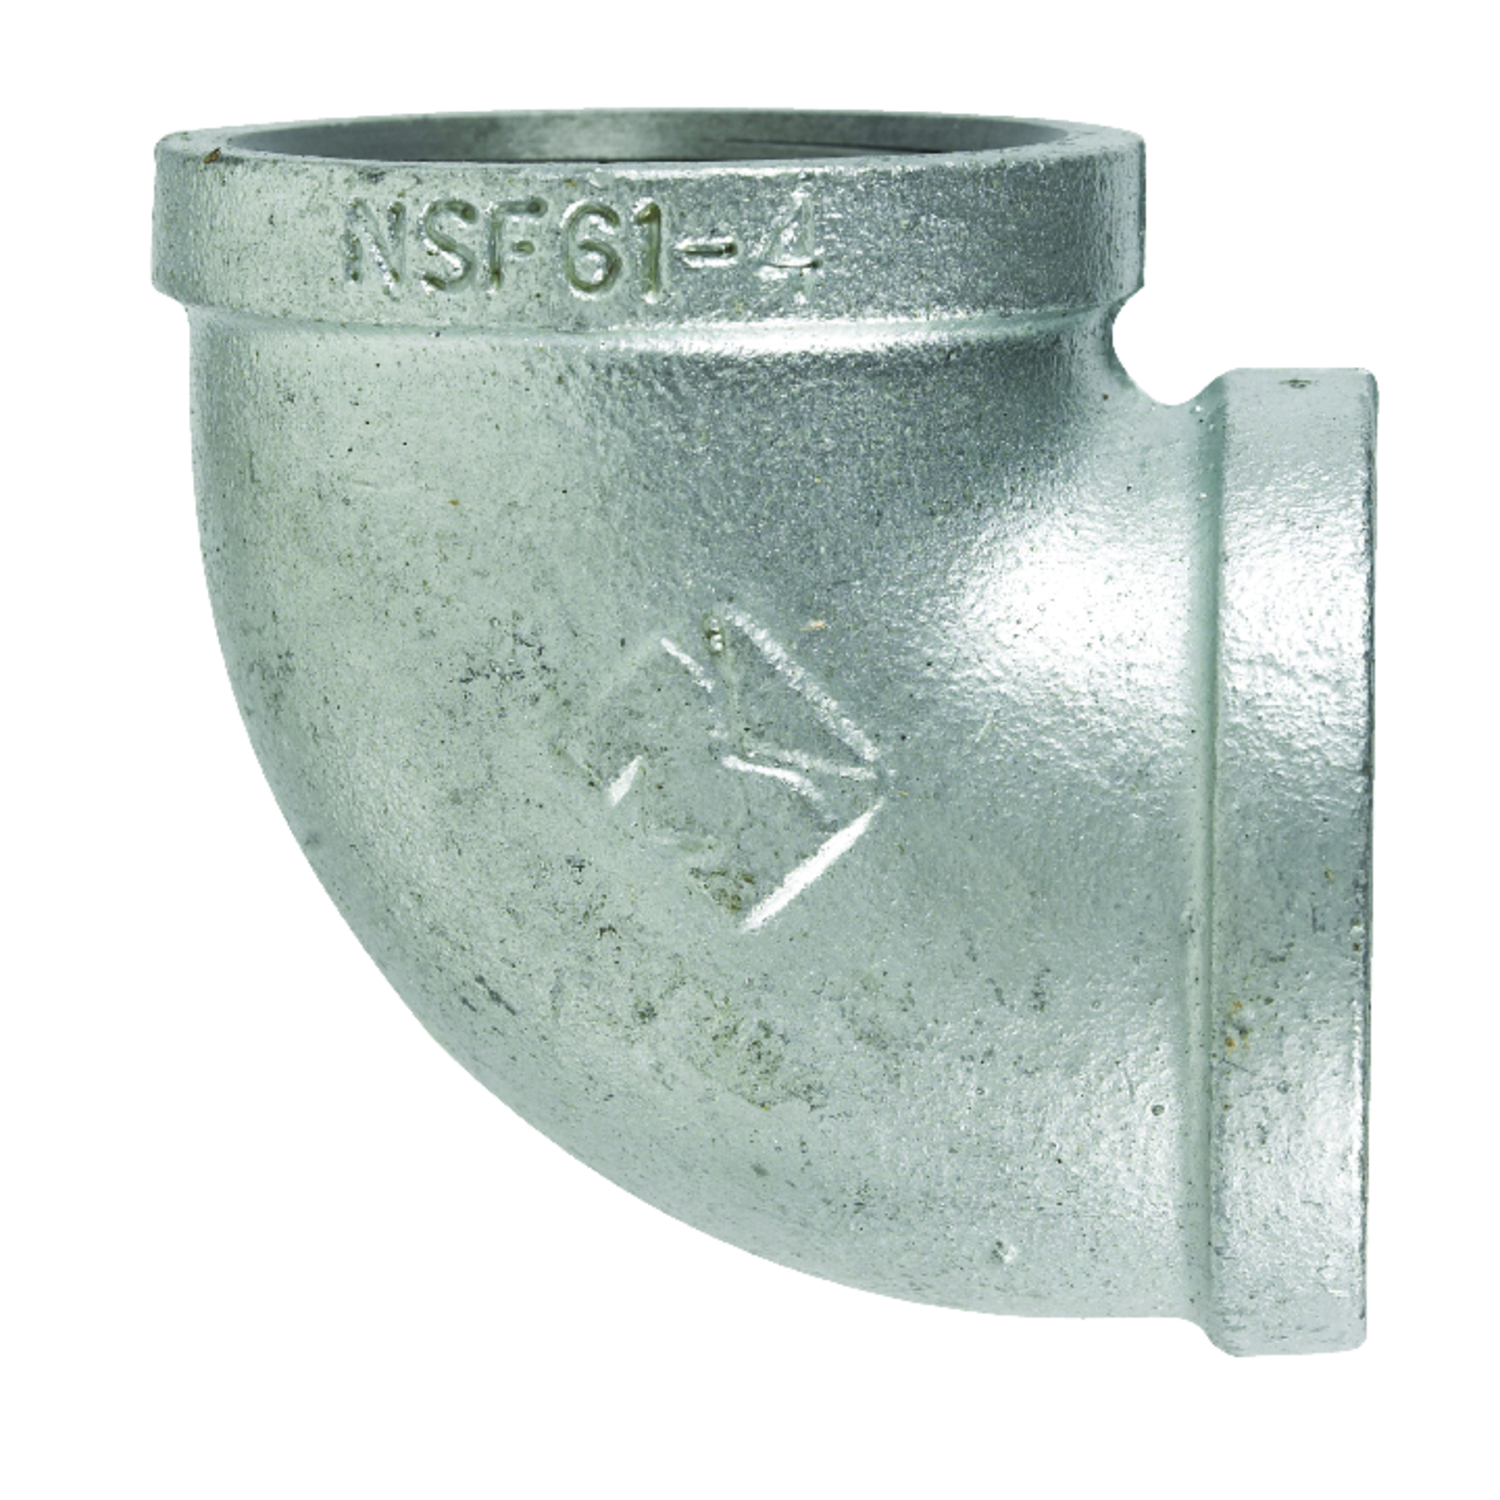 B & K  1/2 in. FPT   x 1/2 in. Dia. FPT  Galvanized  Malleable Iron  Elbow